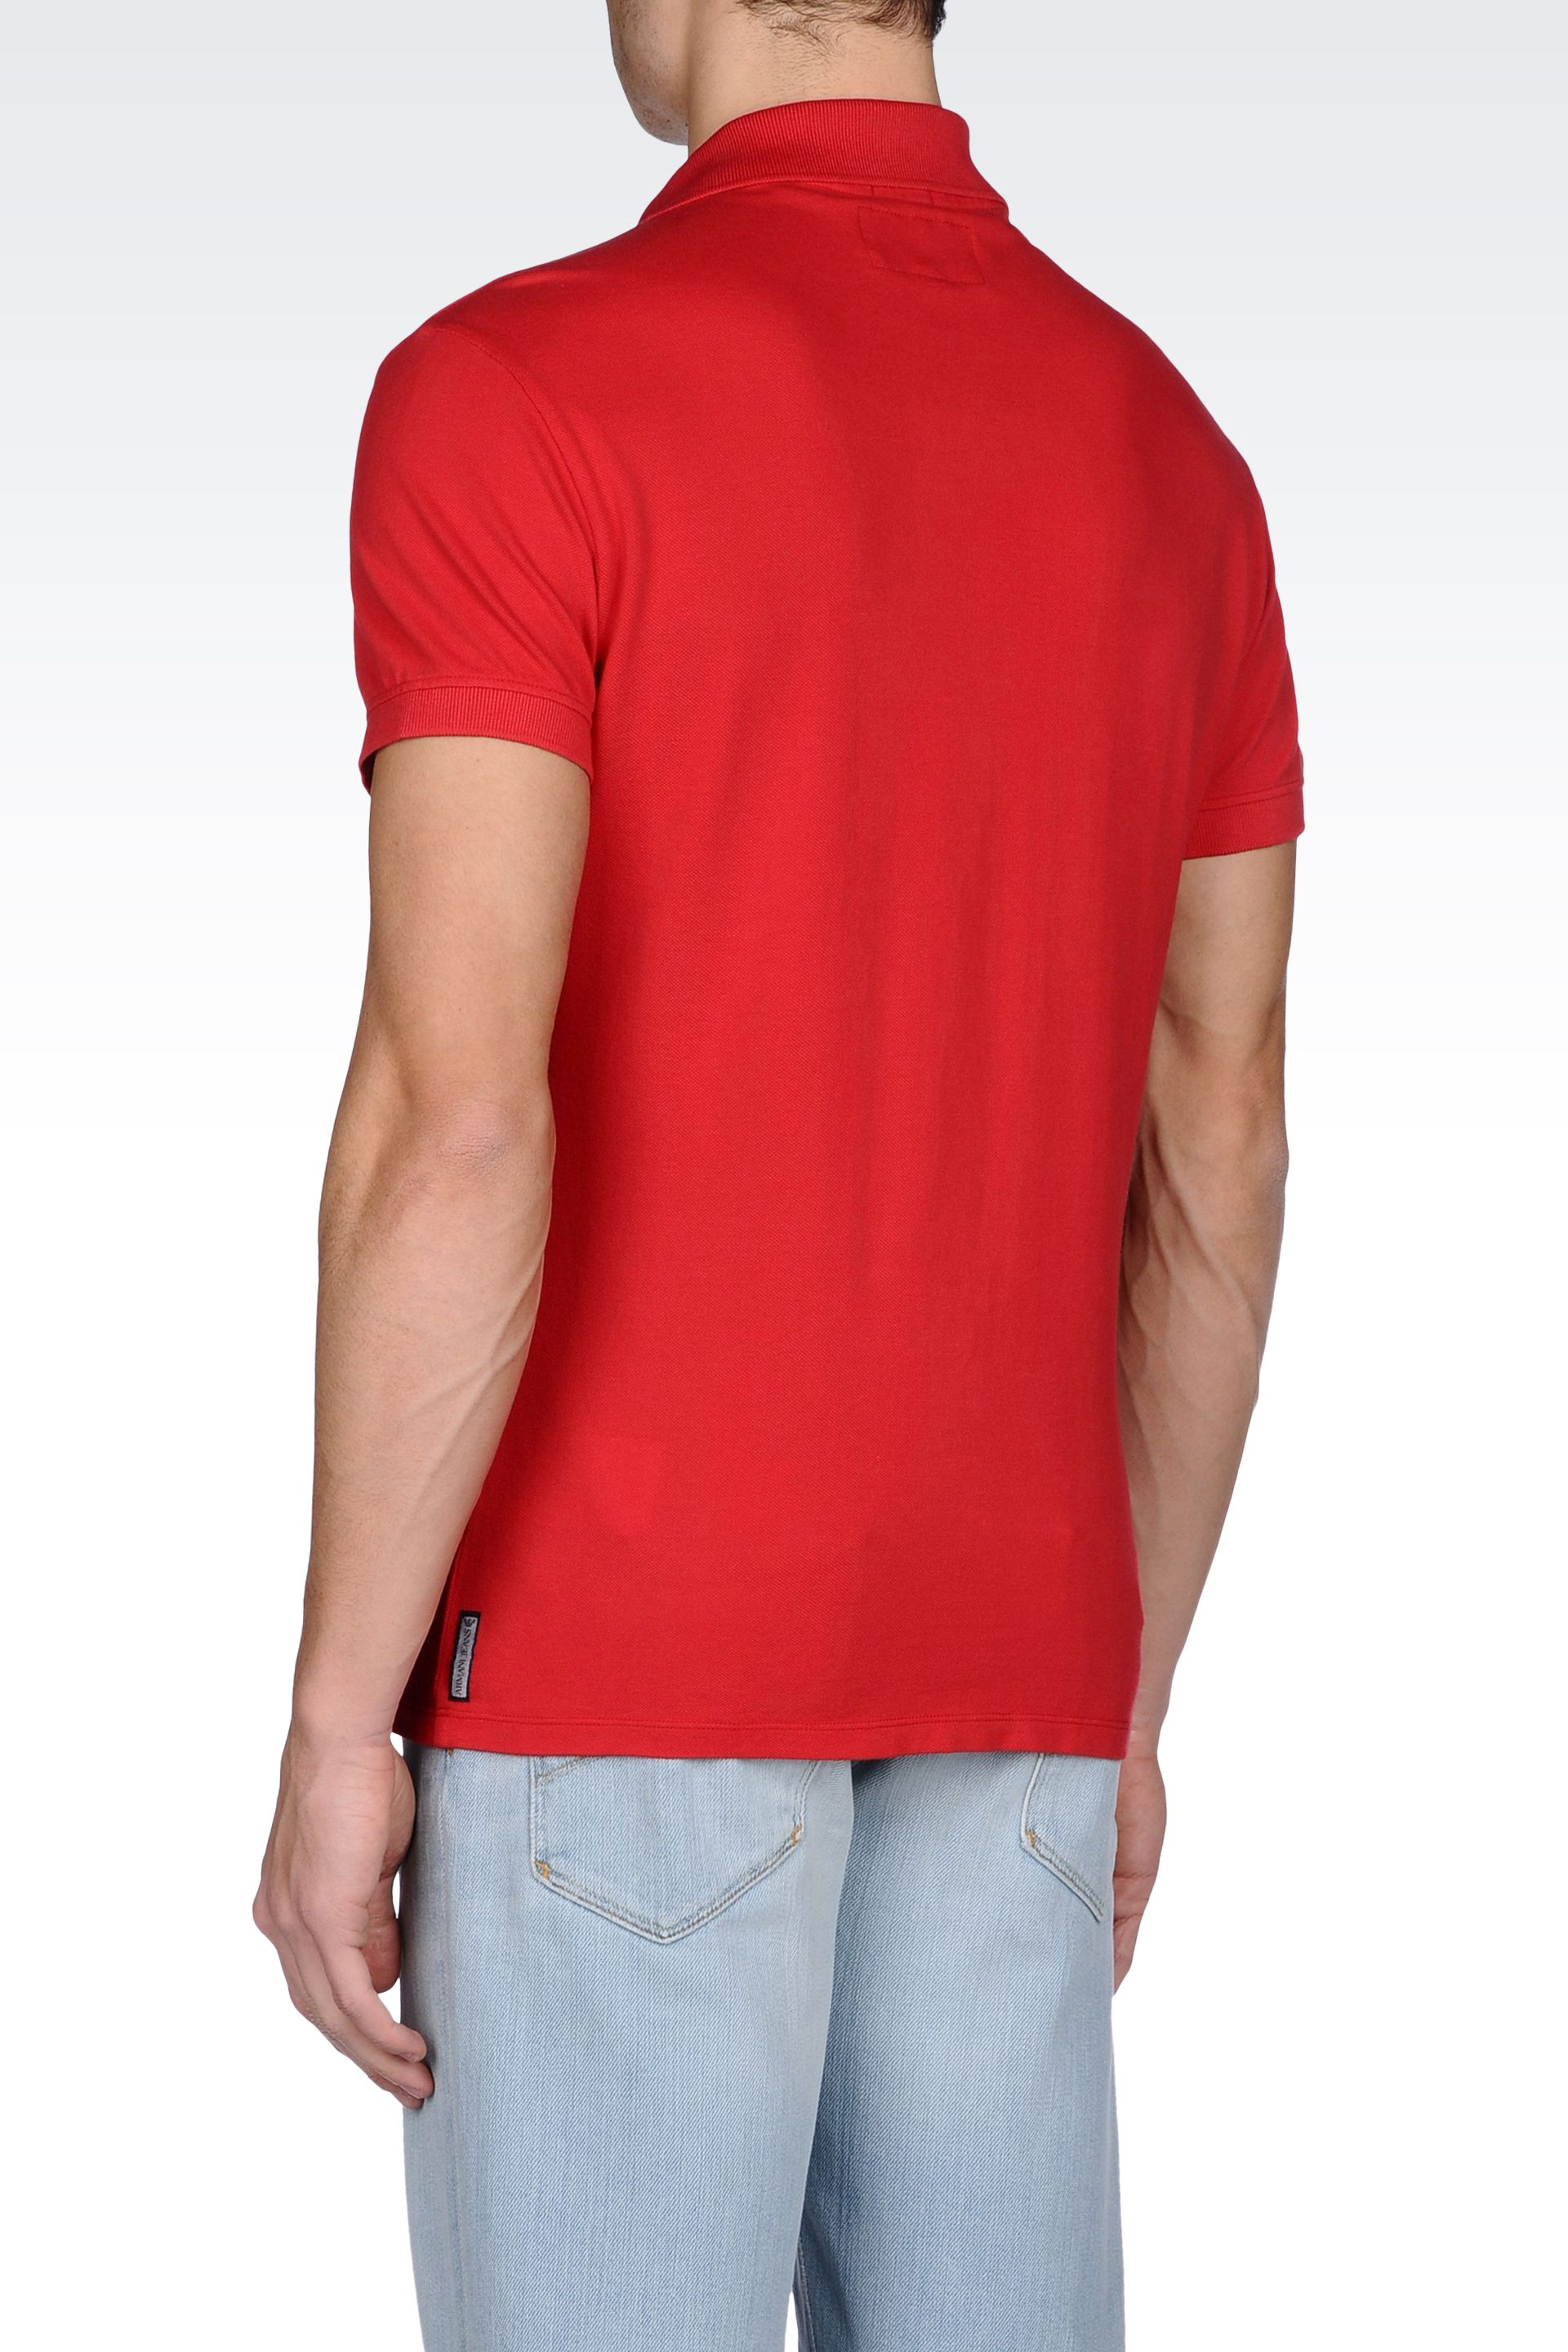 Lyst armani jeans classic polo shirt in cotton pique in for Polo shirt and jeans